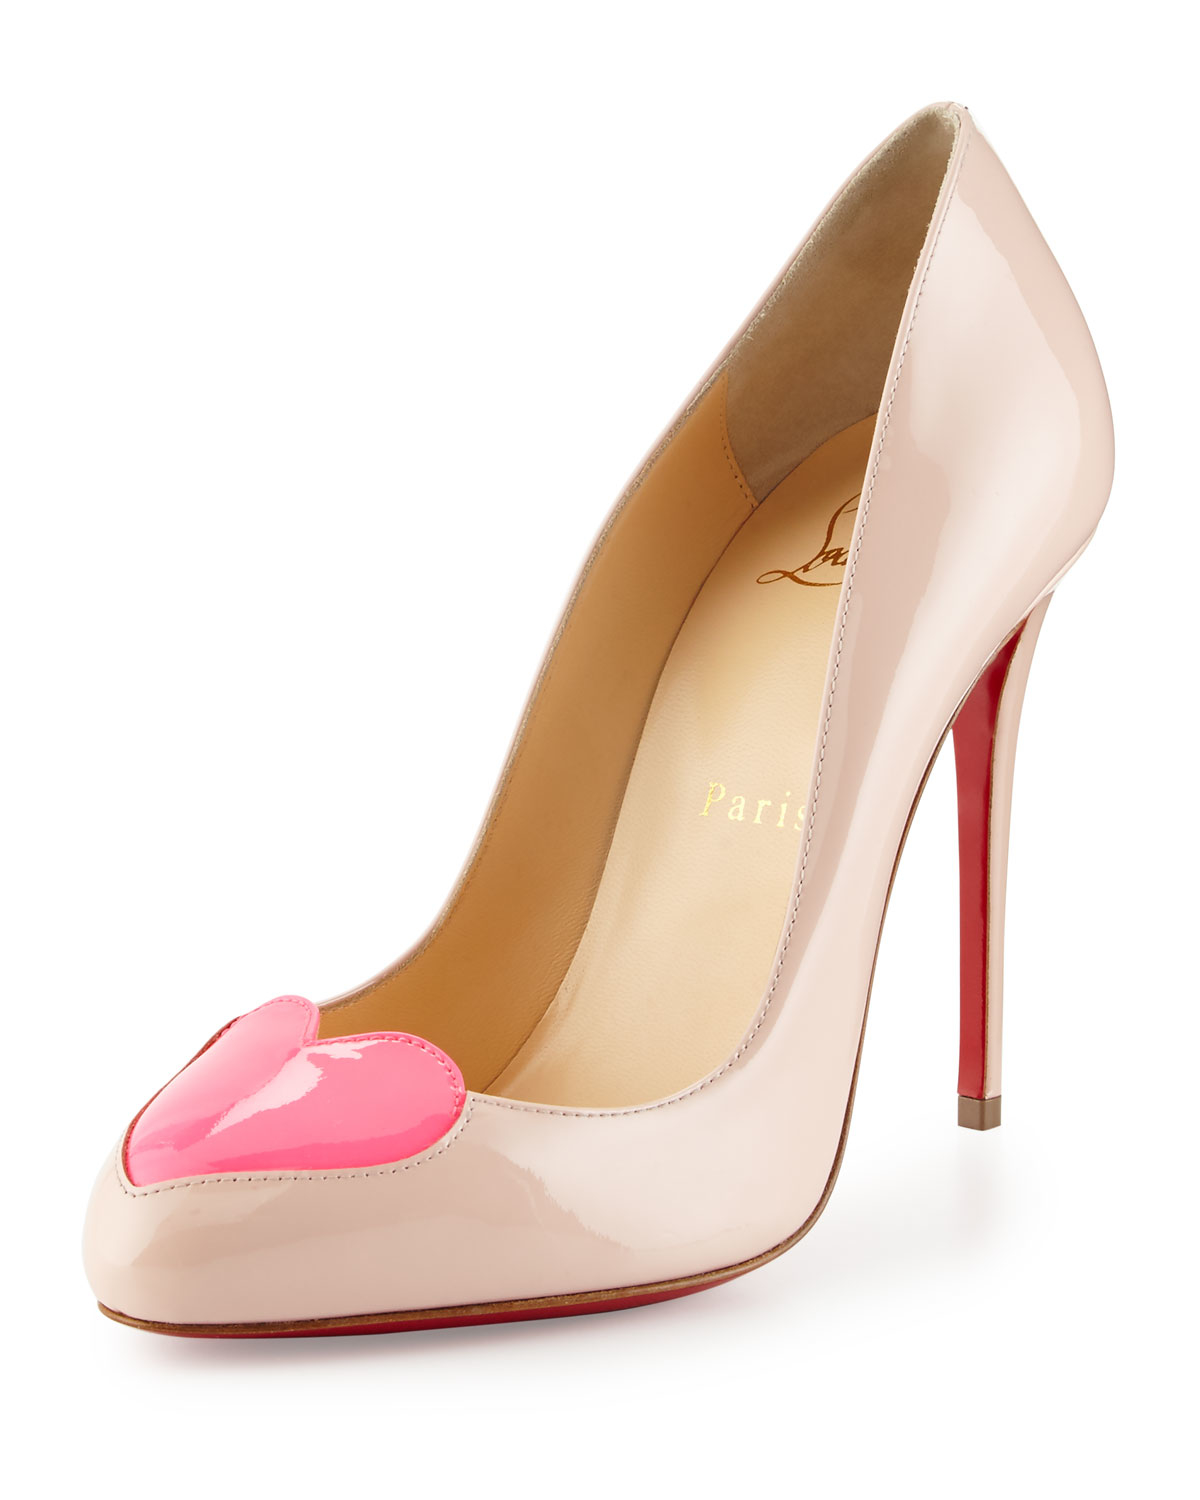 christian louboutin heart shaped shoes